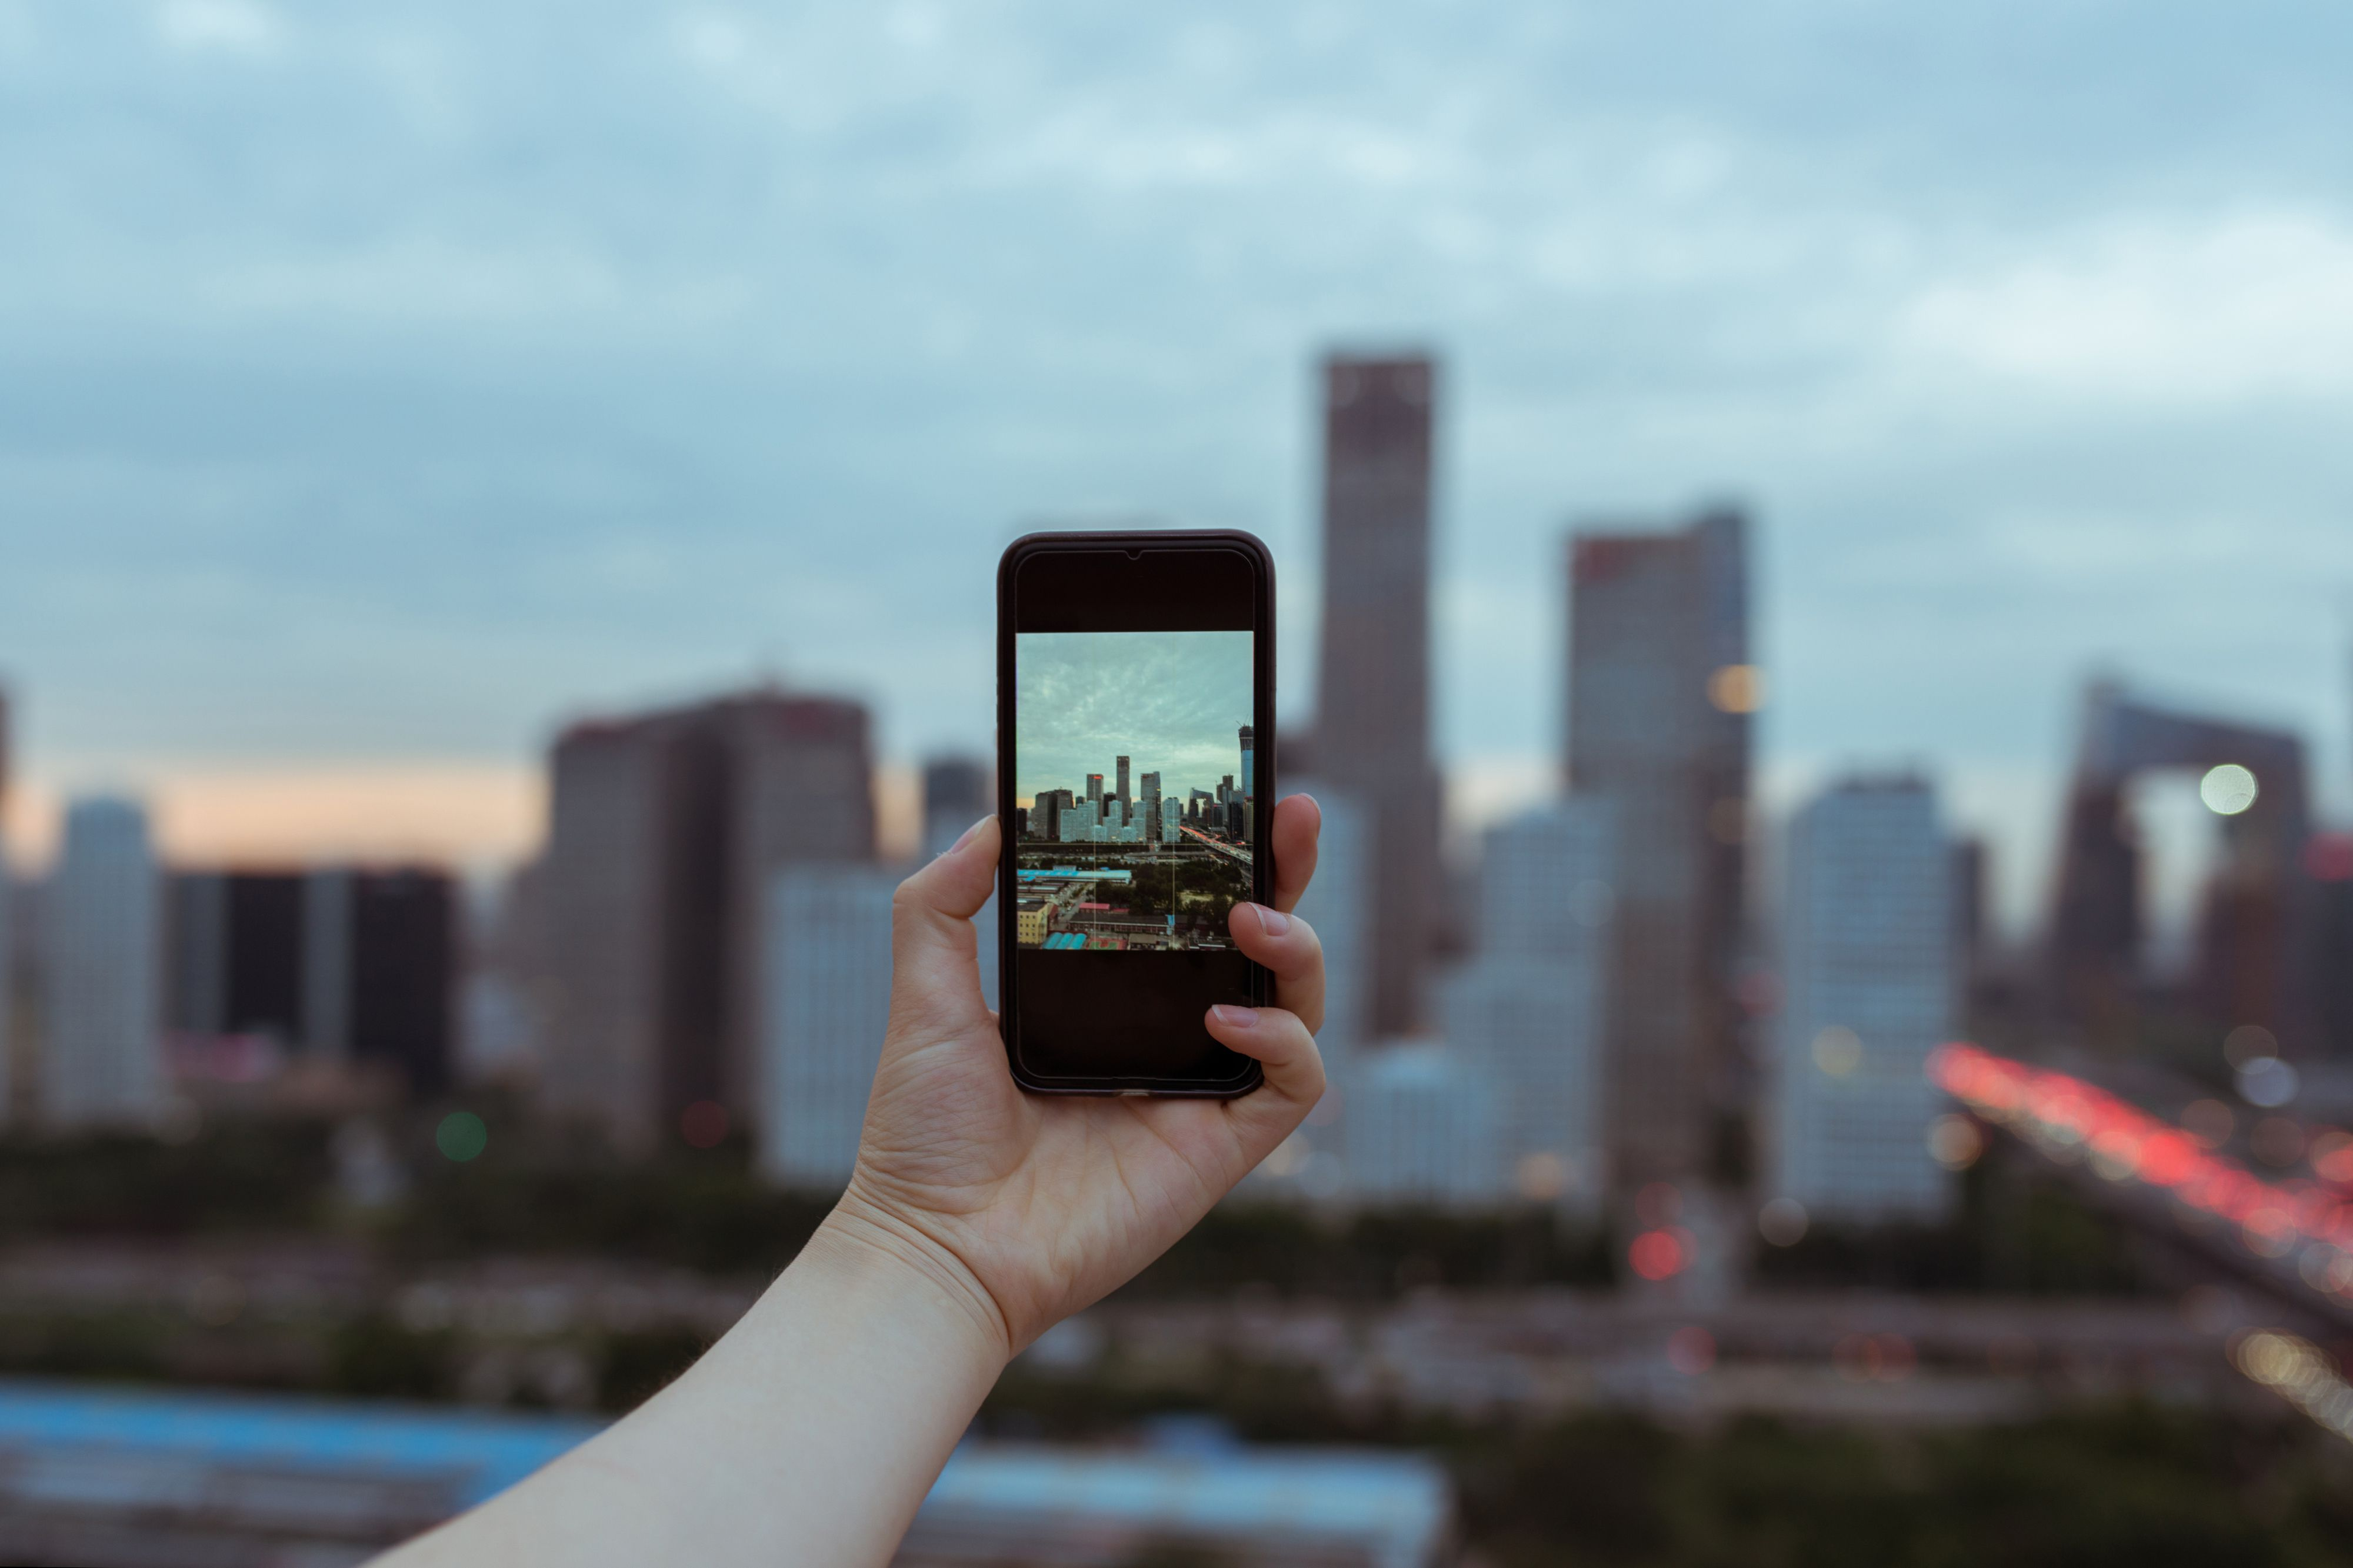 Tips & Tools to Up Your Mobile Photography Game